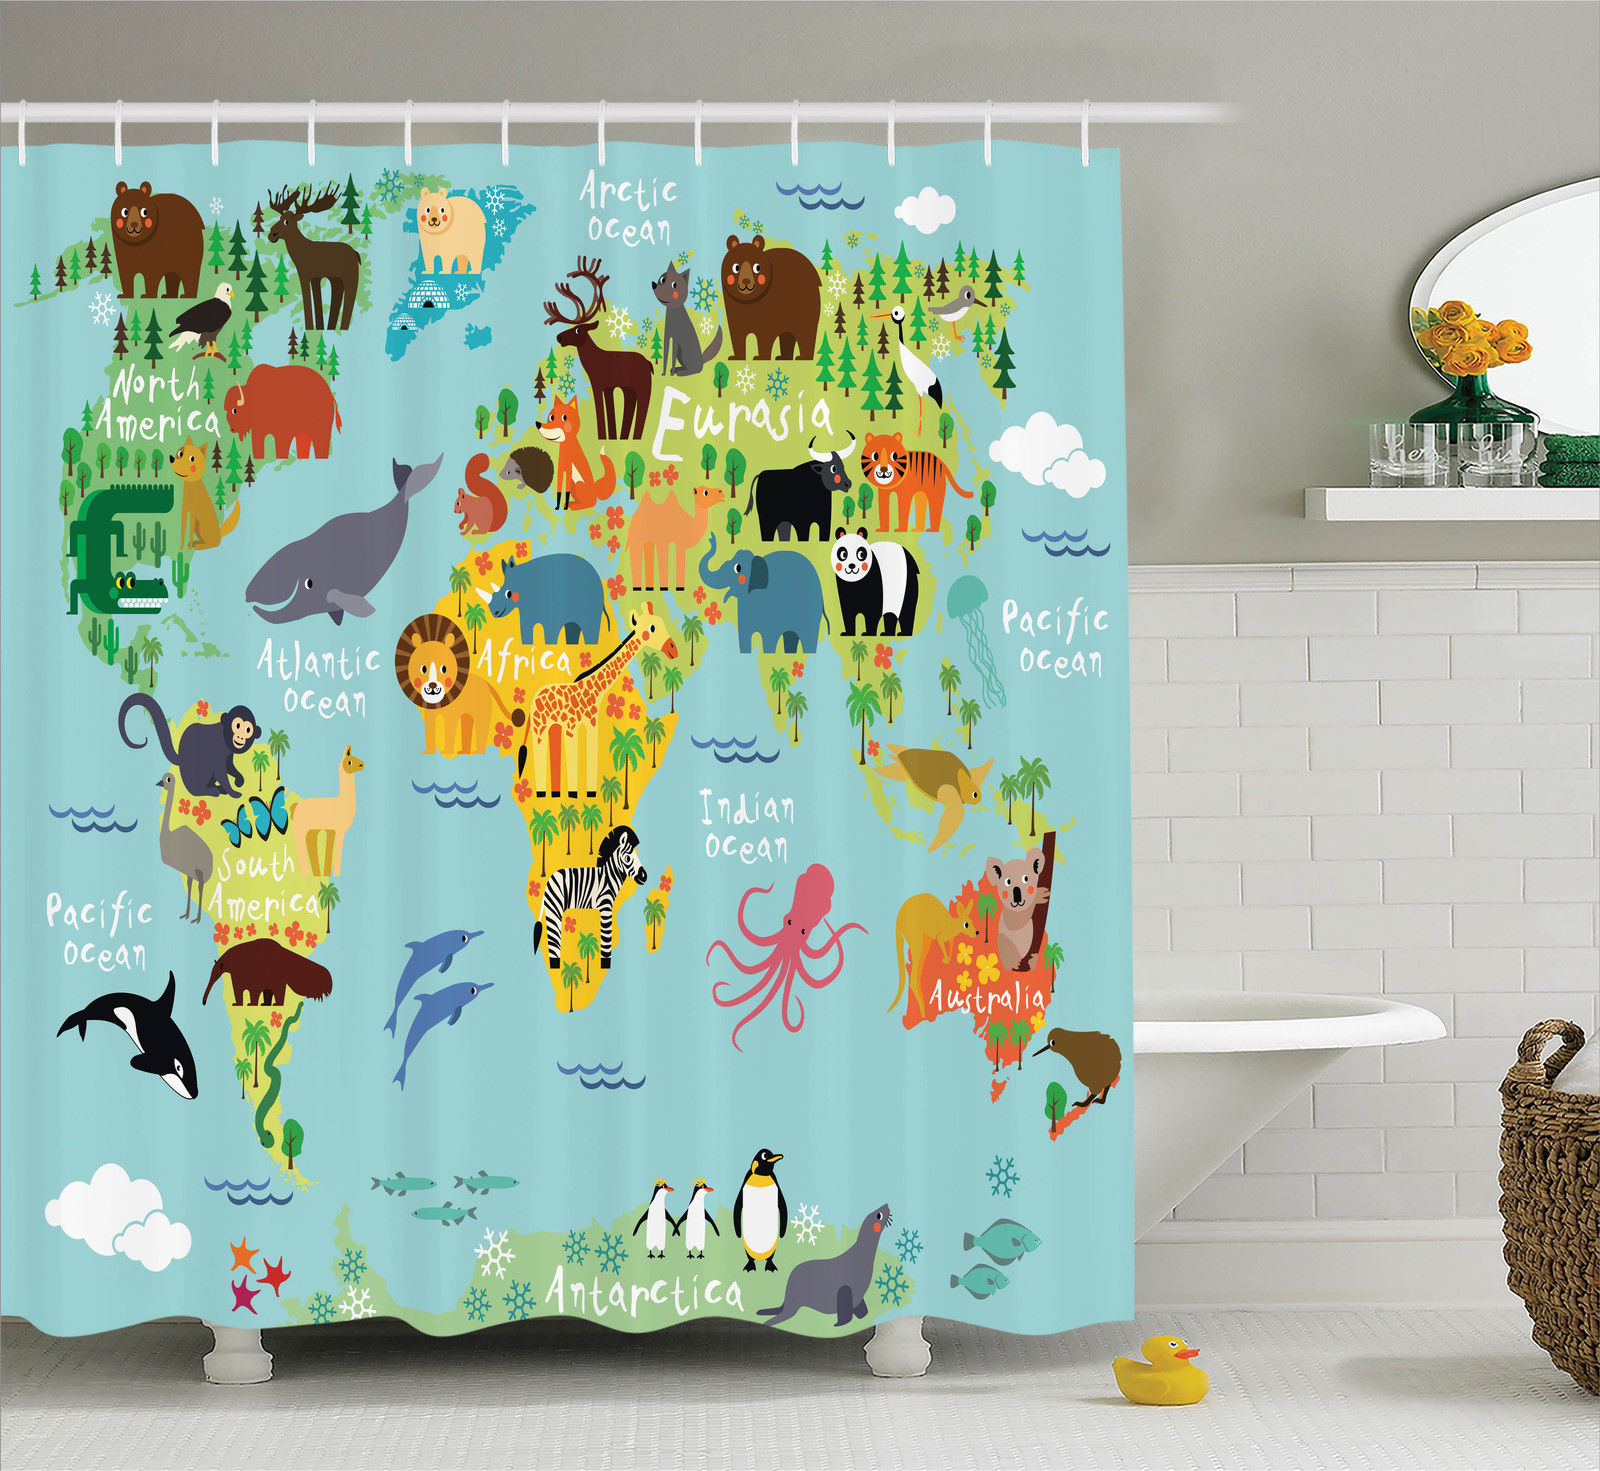 Lovely Wanderlust Decor Animal Map Of The World For Children And Kids Cartoon  Mountains Forests, Bathroom